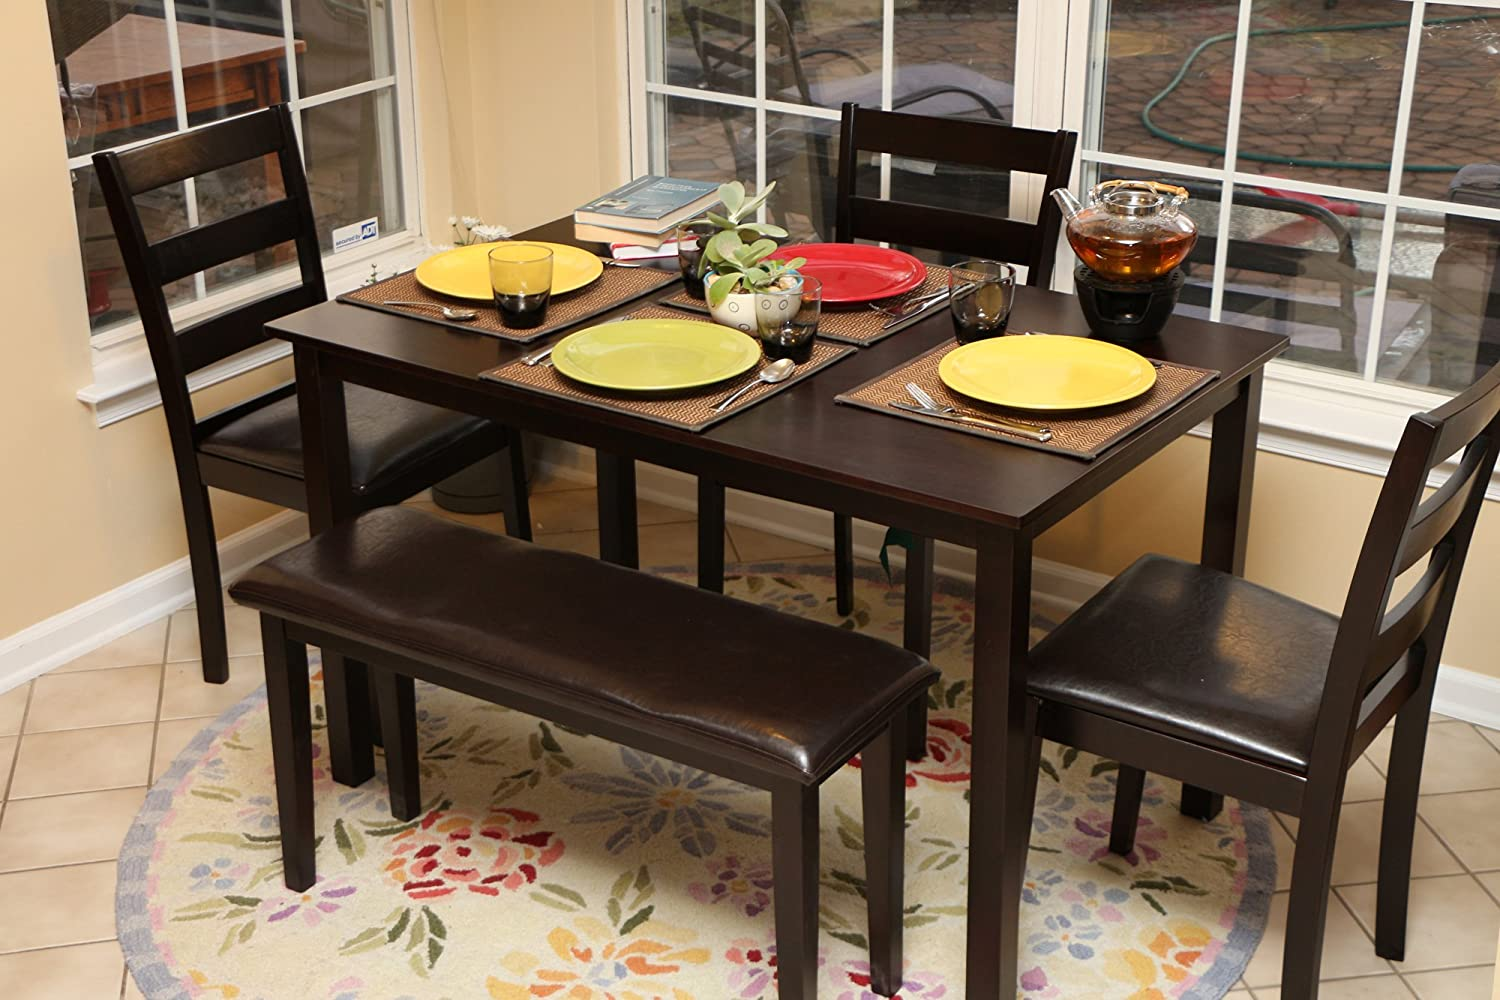 Home Life 4pc Dining Dinette Table Chairs & Bench Set Espresso Finish 140236